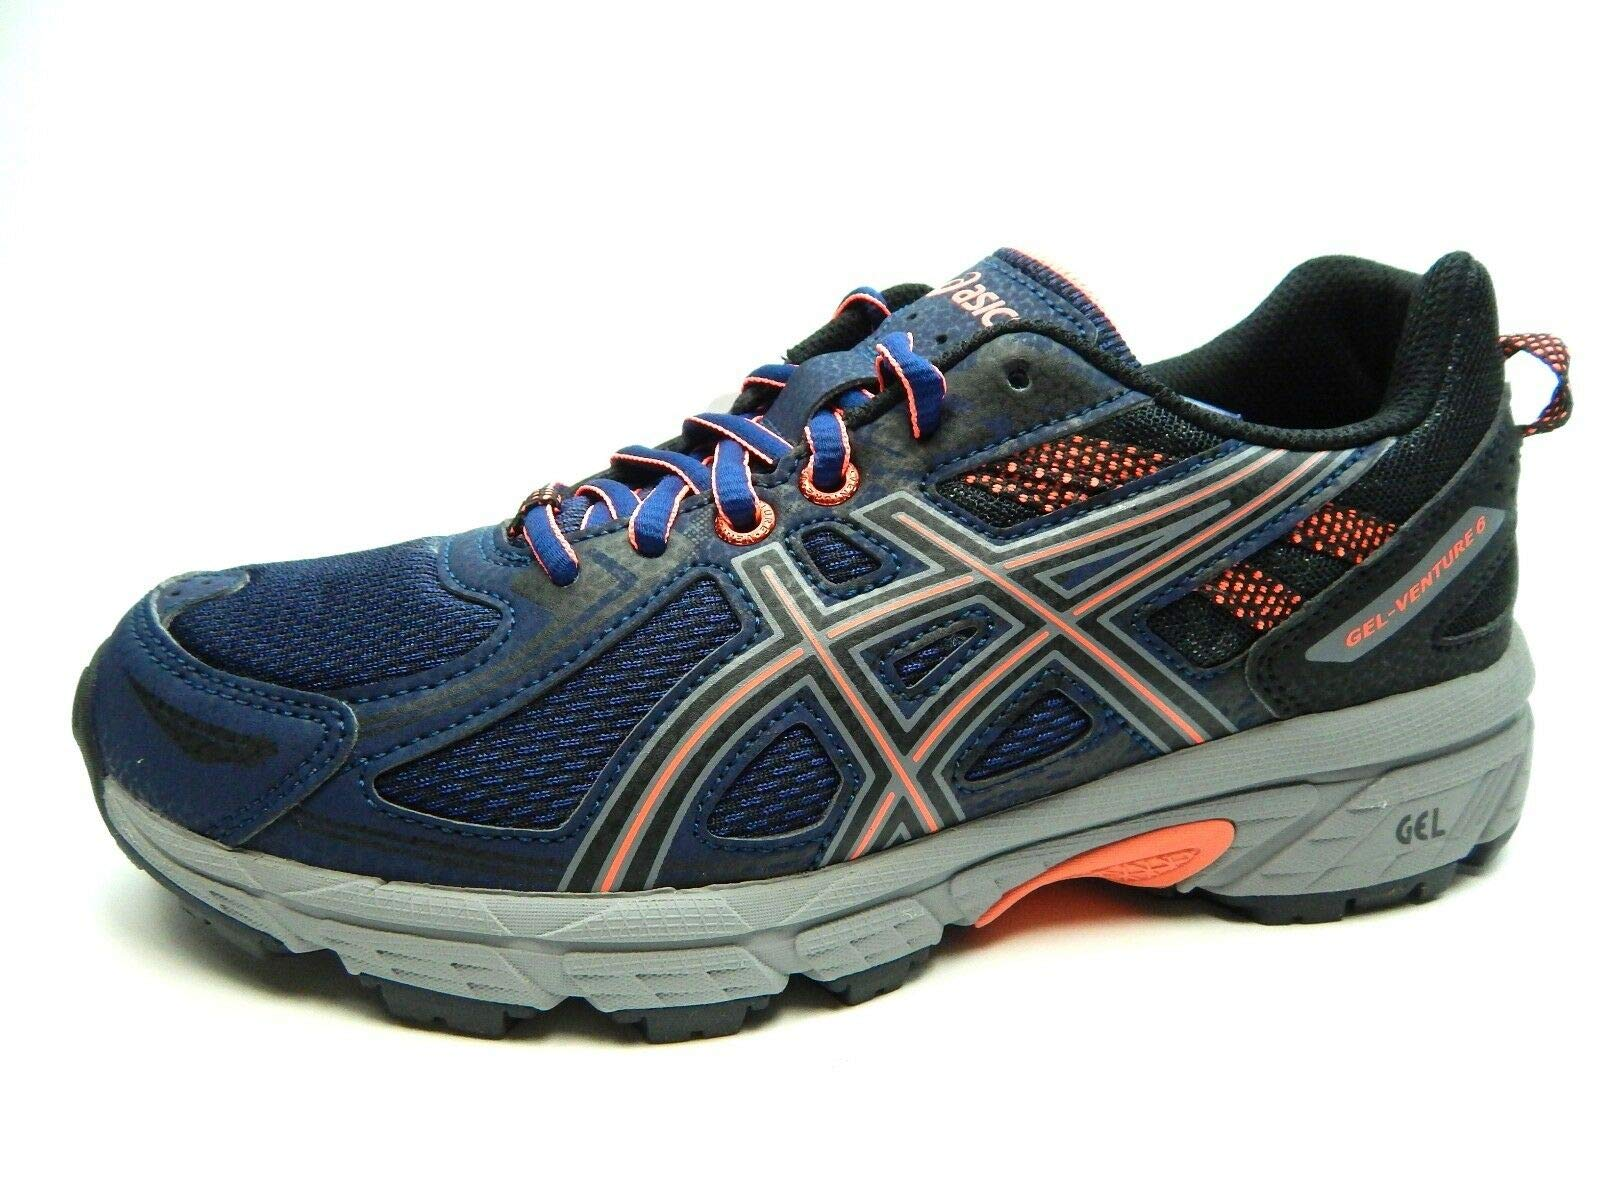 ASICS Women's Gel-Venture 6 Running-Shoes, Indigo Blue/Black/Coral, 9 by ASICS